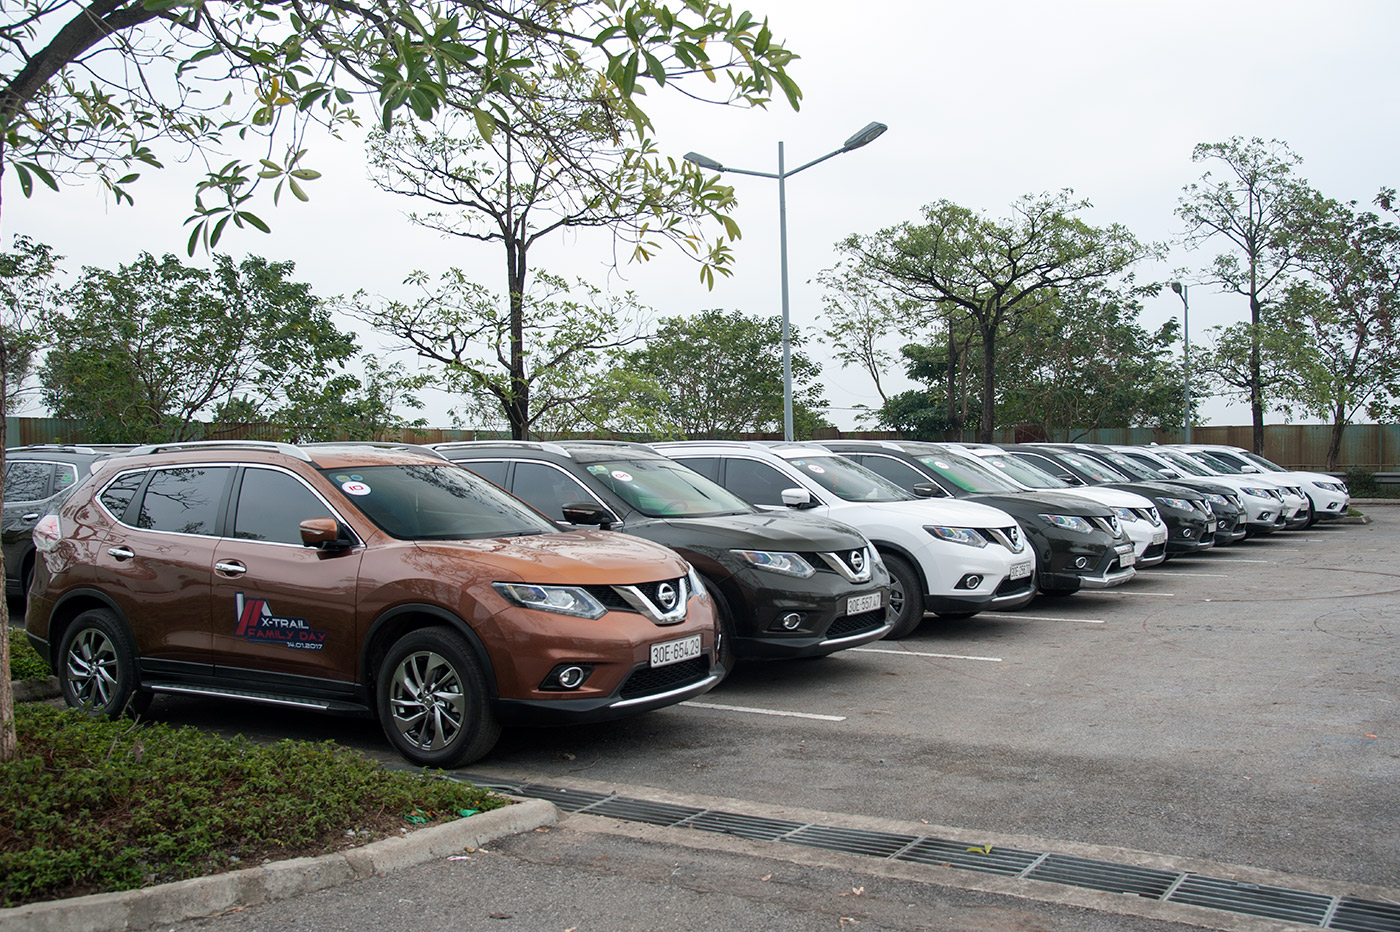 nissan-xtrail-family-day-3.jpg